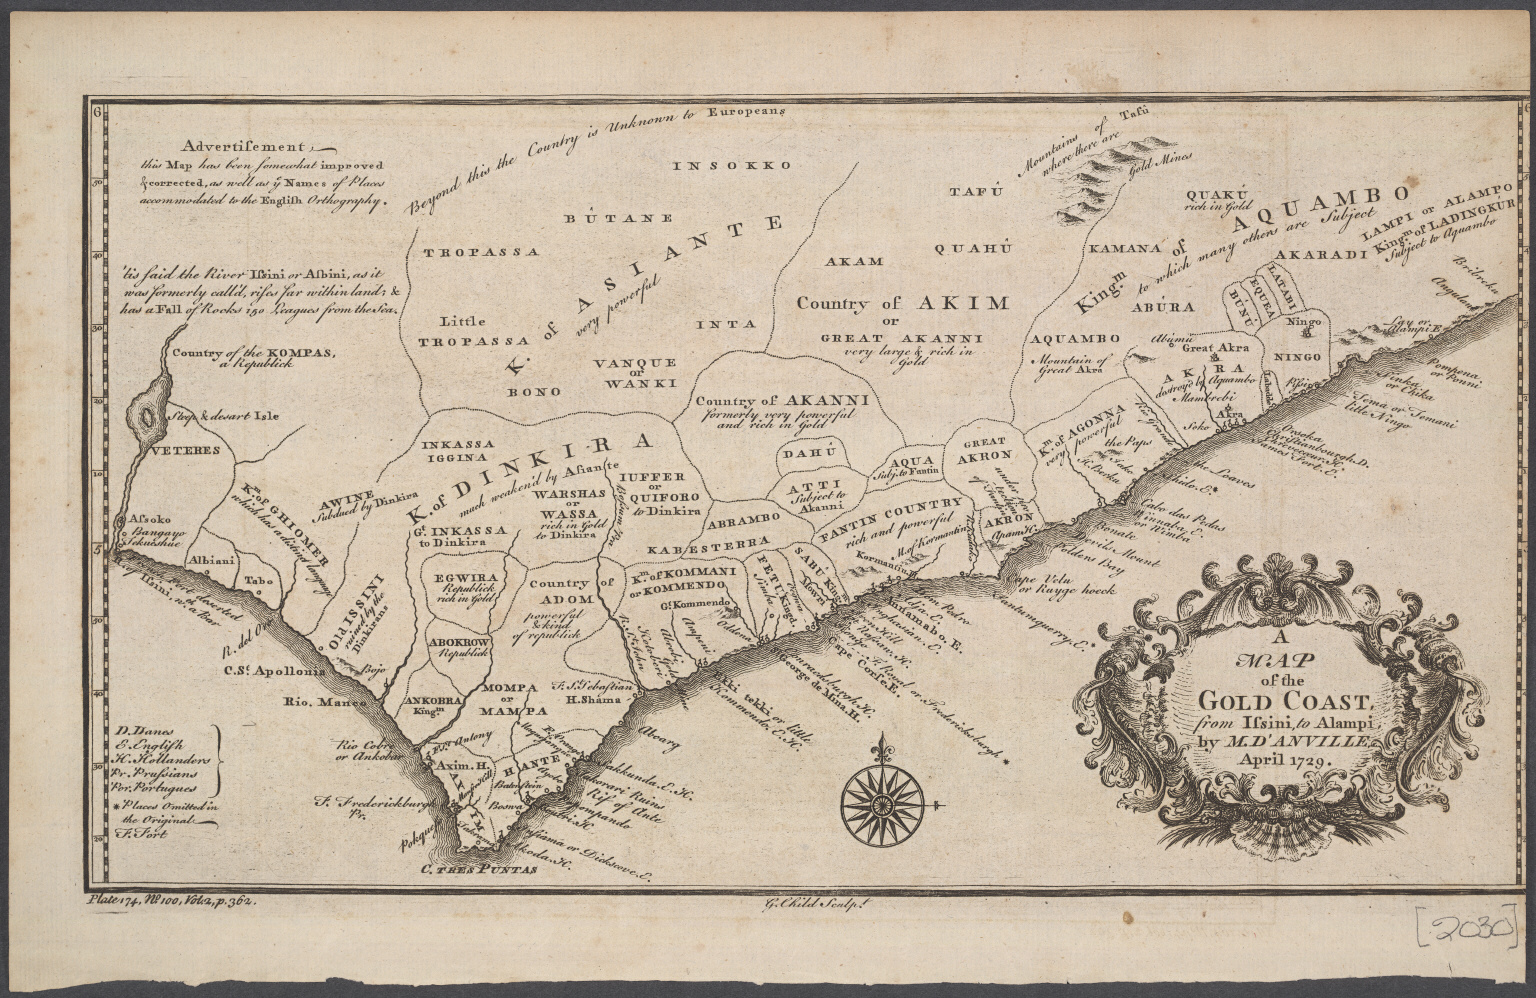 A Map of the Gold Coast from Issini to Alampi by Mr d'Amville April 1729.